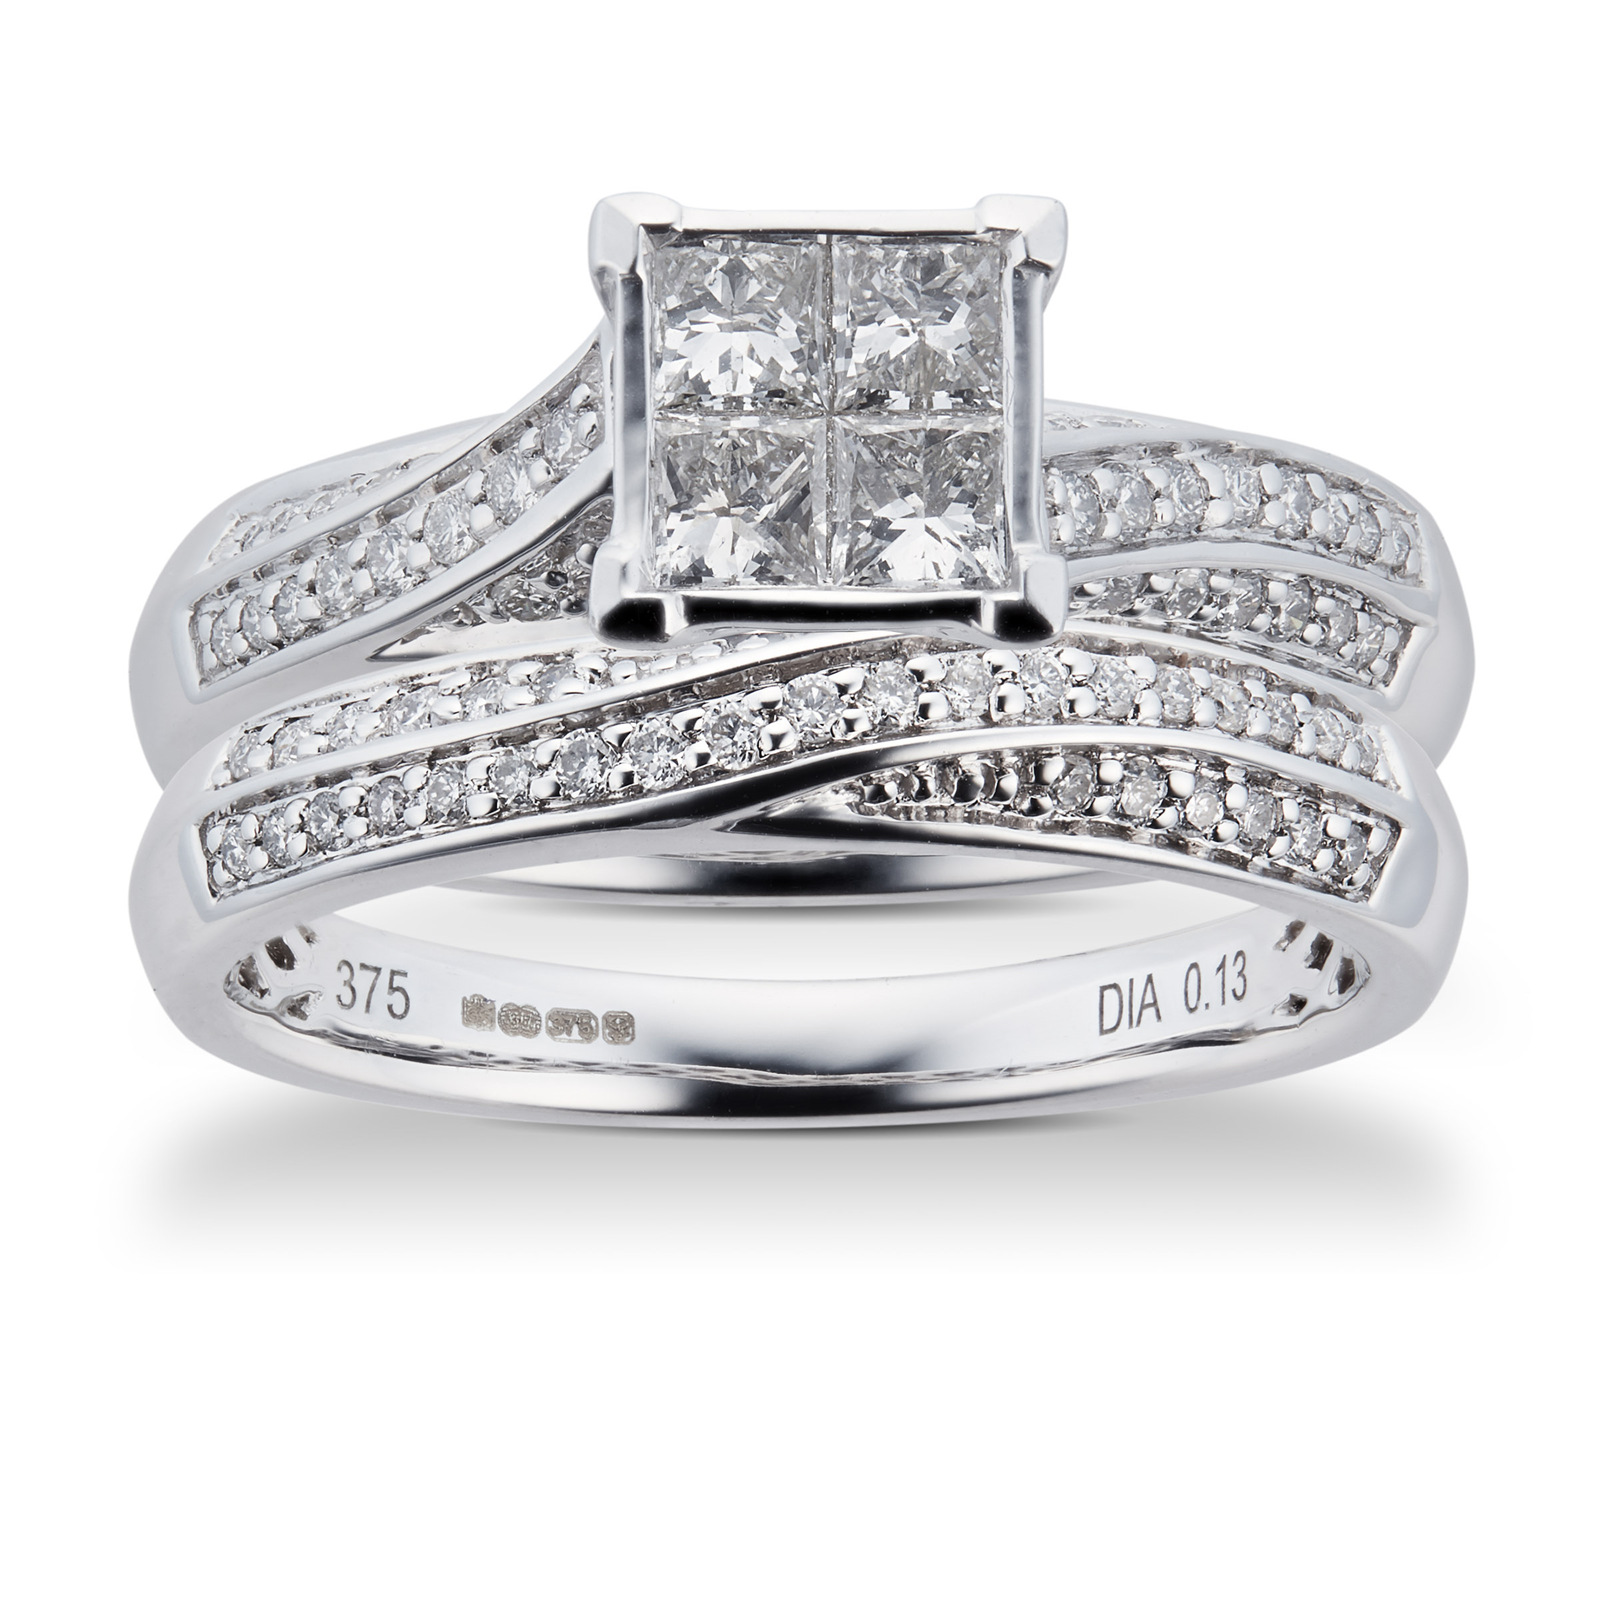 Princess and Brilliant Cut 0.76 Carat Total Weight Diamond Bridal Set in 9 Carat White Gold  Ring Size M